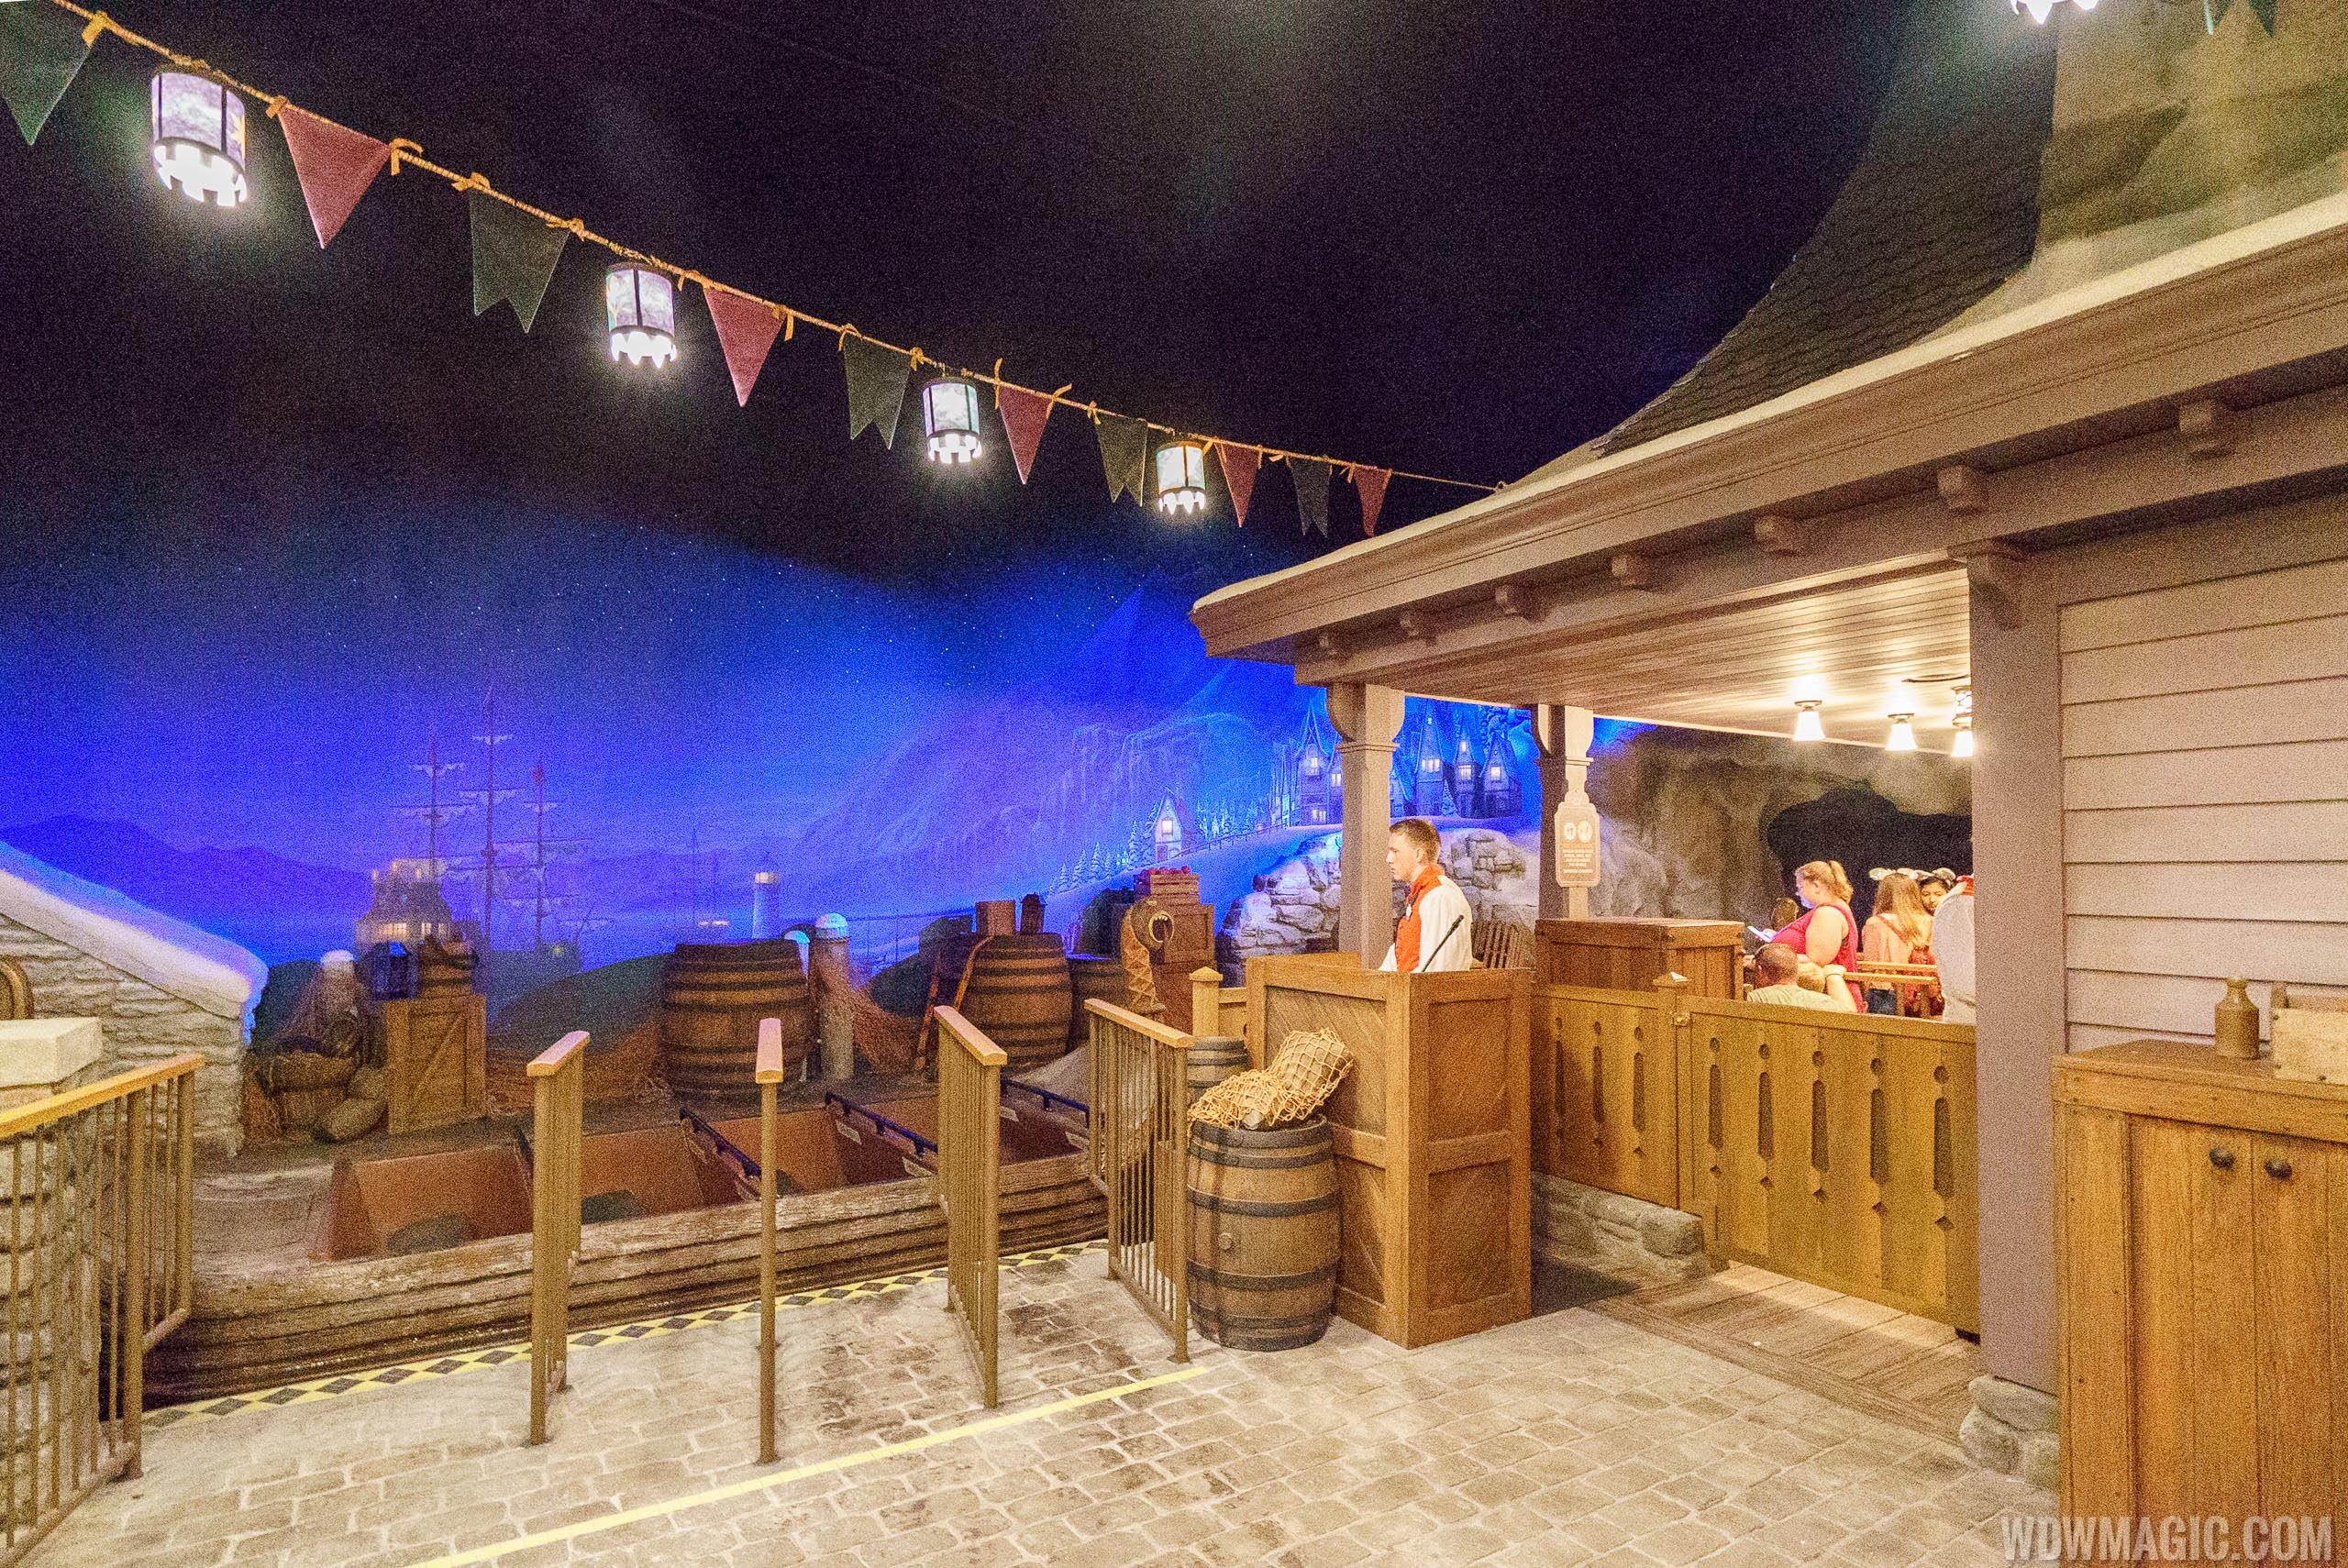 Loading area at Frozen Ever After